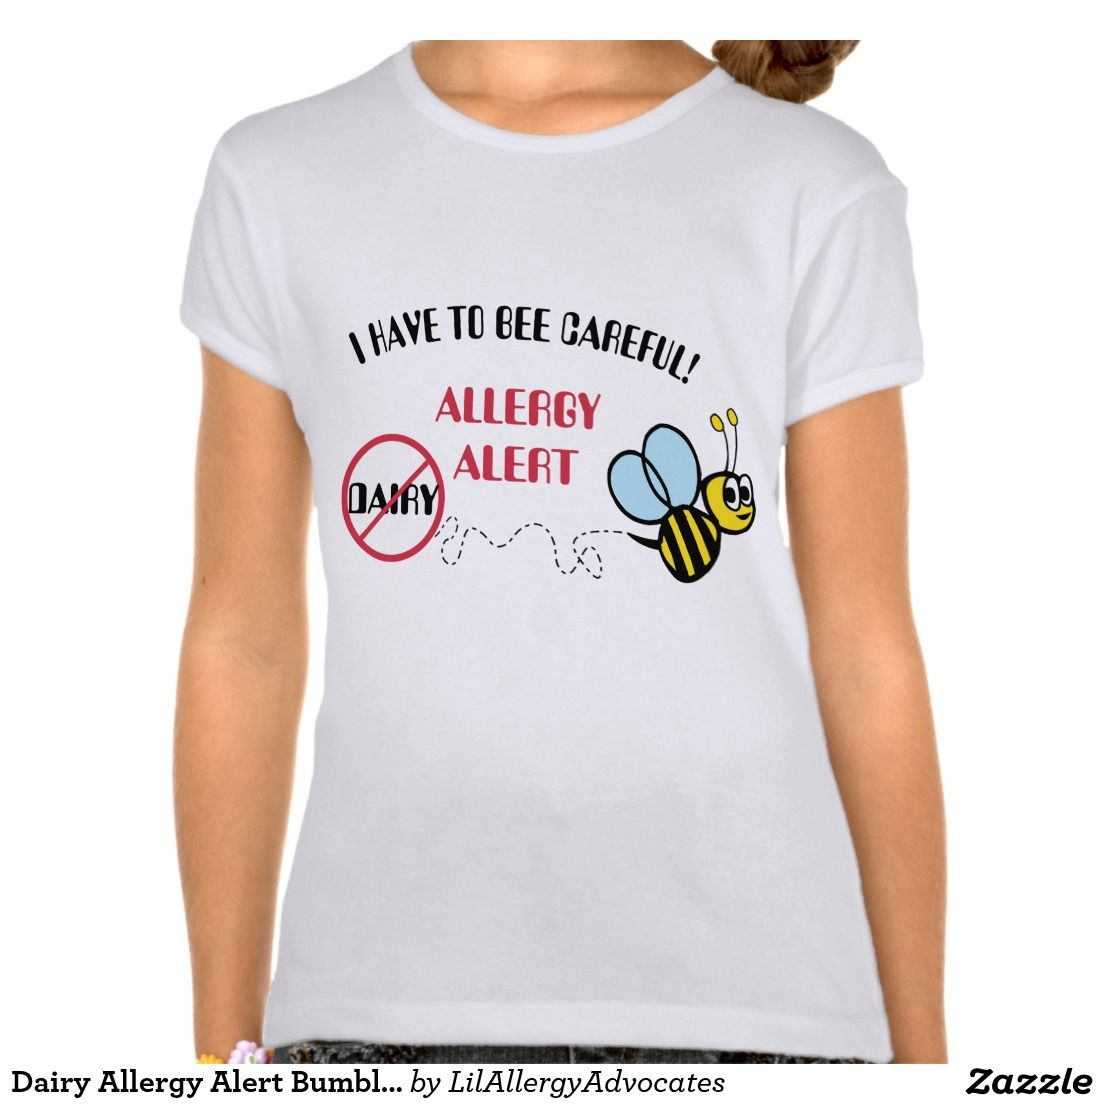 Zazzle t shirt design size - Dairy Allergy Alert Bumblebee Shirt I Have To Be Careful Allergy Alert Shirt For